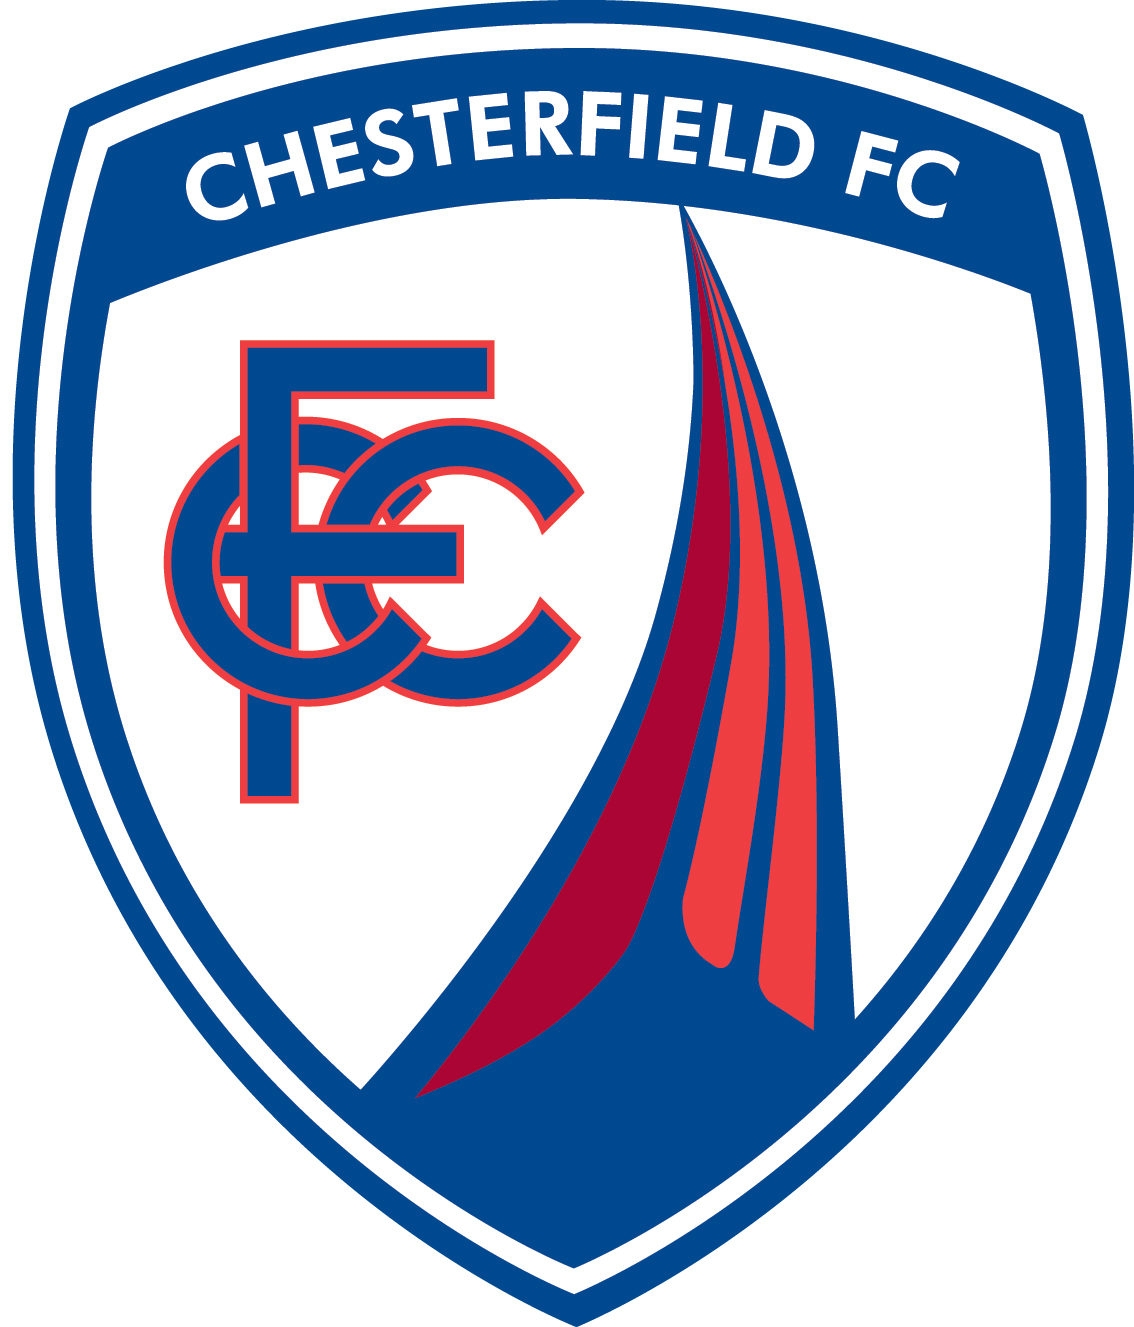 OPPOSITION INSIGHT: Chesterfield